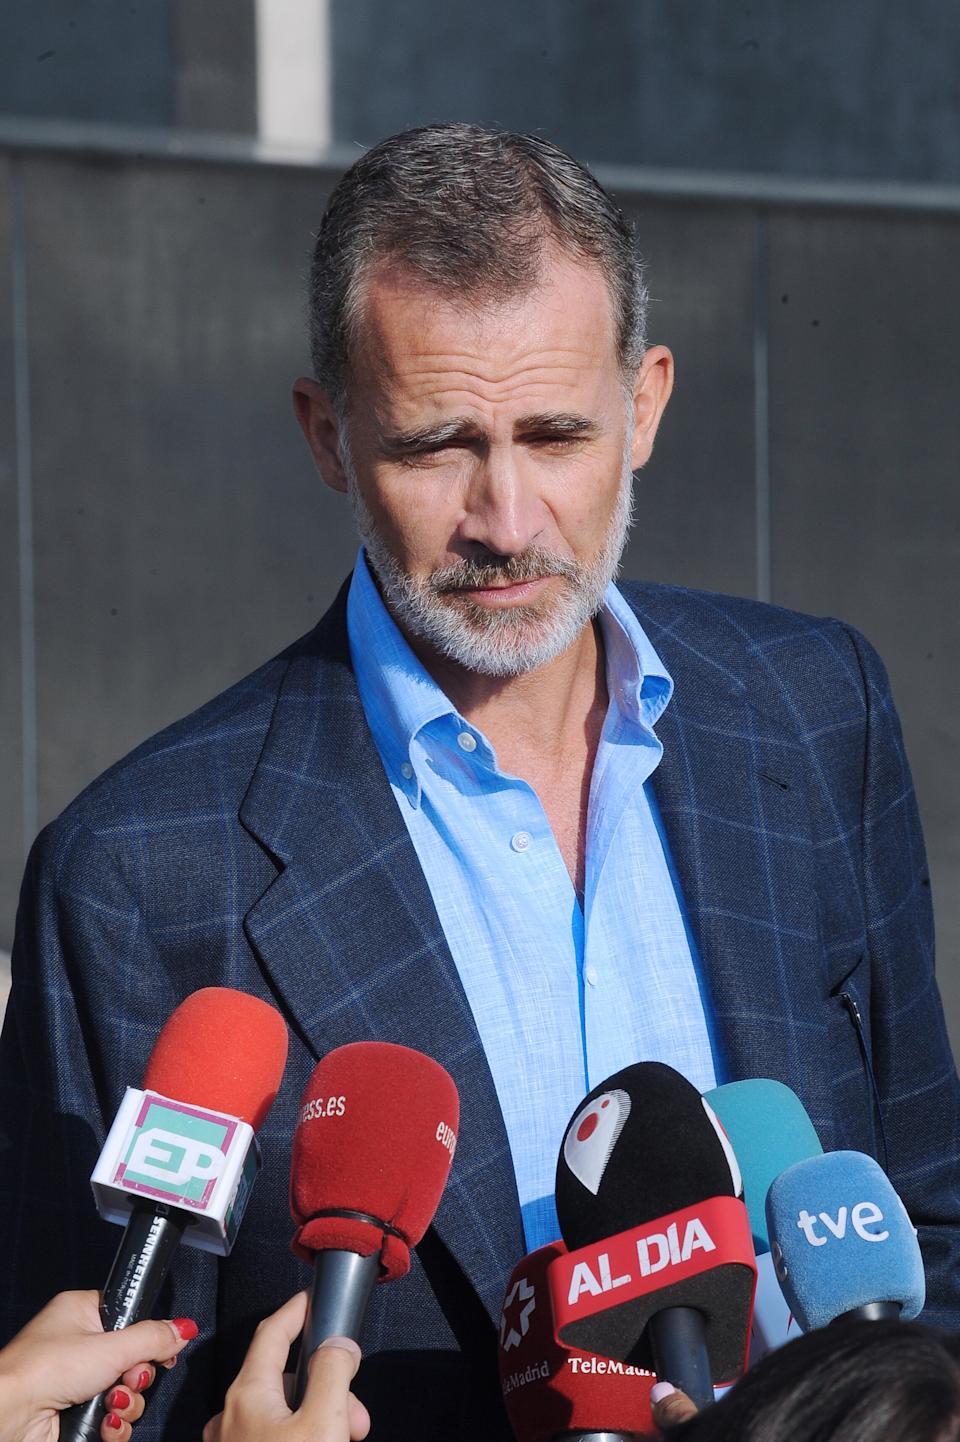 MADRID, SPAIN - AUGUST 28: King Felipe of Spain is seen arriving to visit King Juan Carlos at Quiron Hospital on August 28, 2019 in Madrid, Spain. (Photo by Europa Press Entertainment/Europa Press via Getty Images)